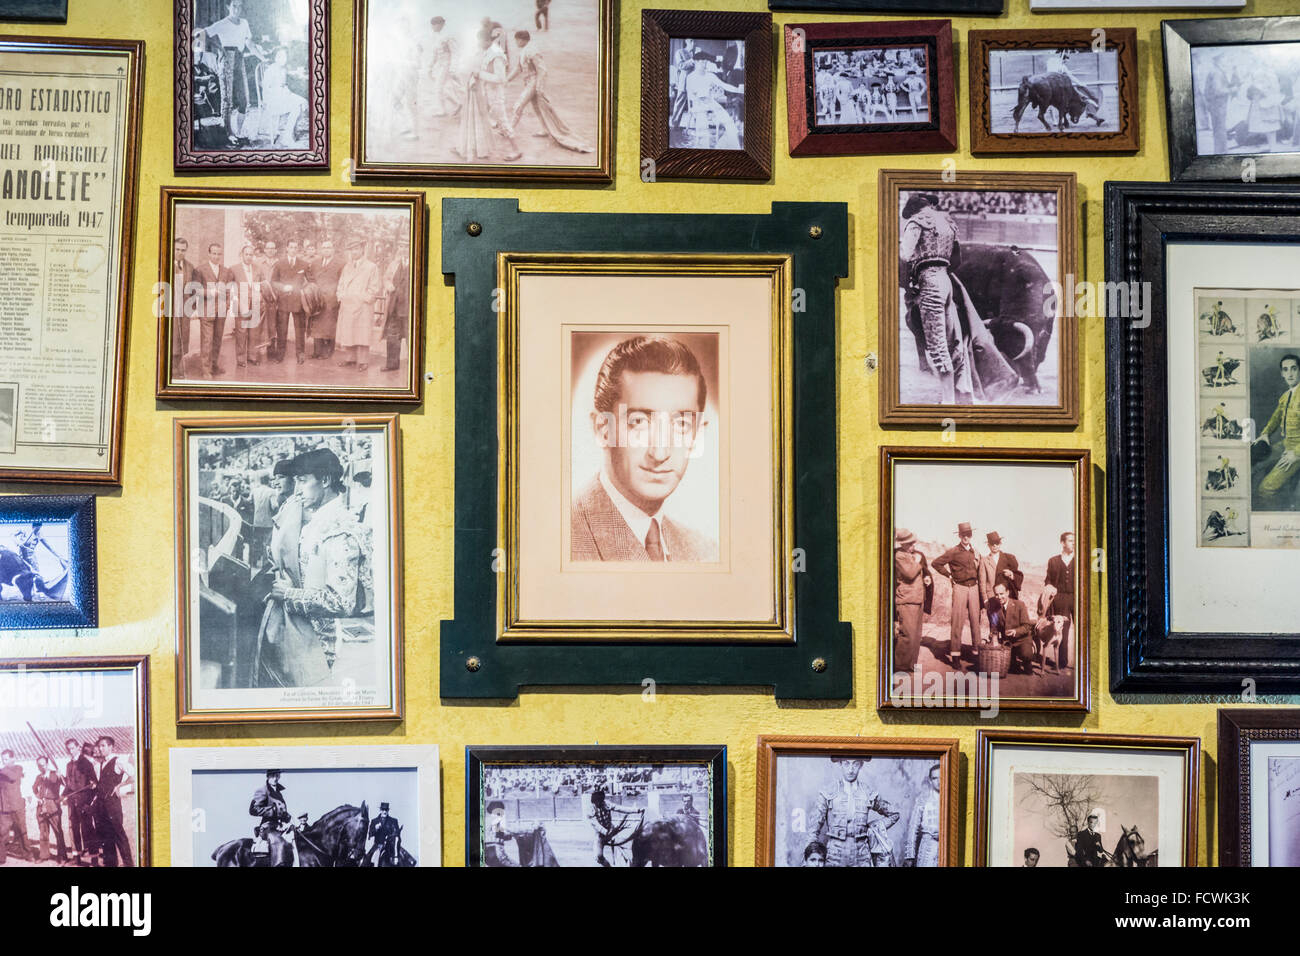 Cordoba, Cordoba Province, Spain.  Photographs of Spanish bullfighter Manolete in interior of Taberna las Comedias. - Stock Image